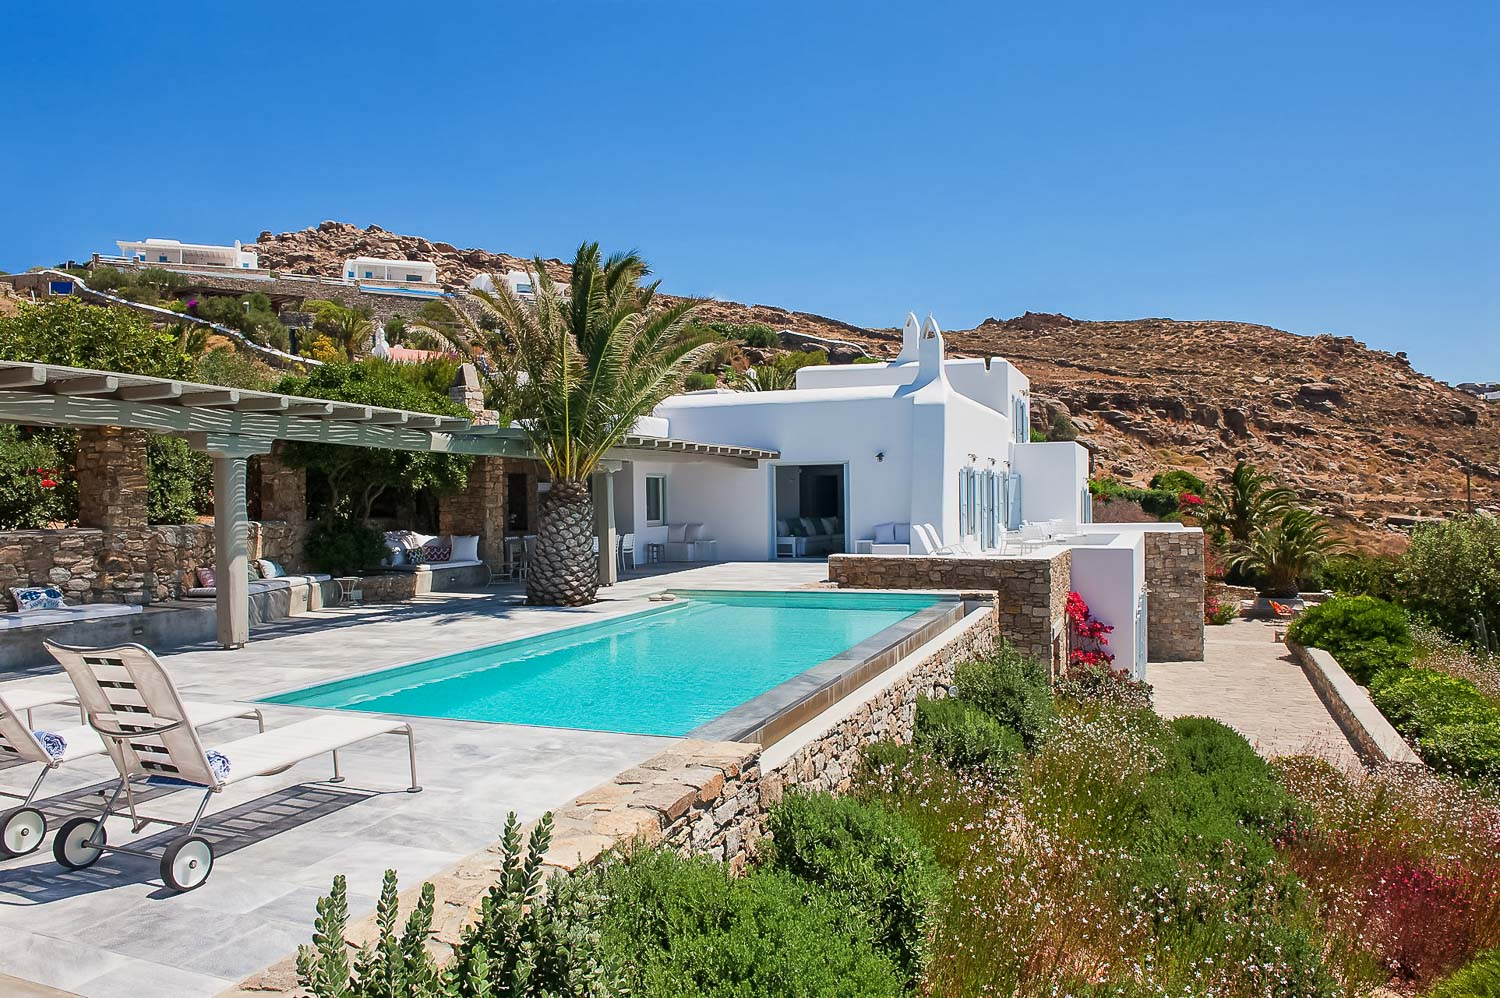 The G House, Mykonos, Greece